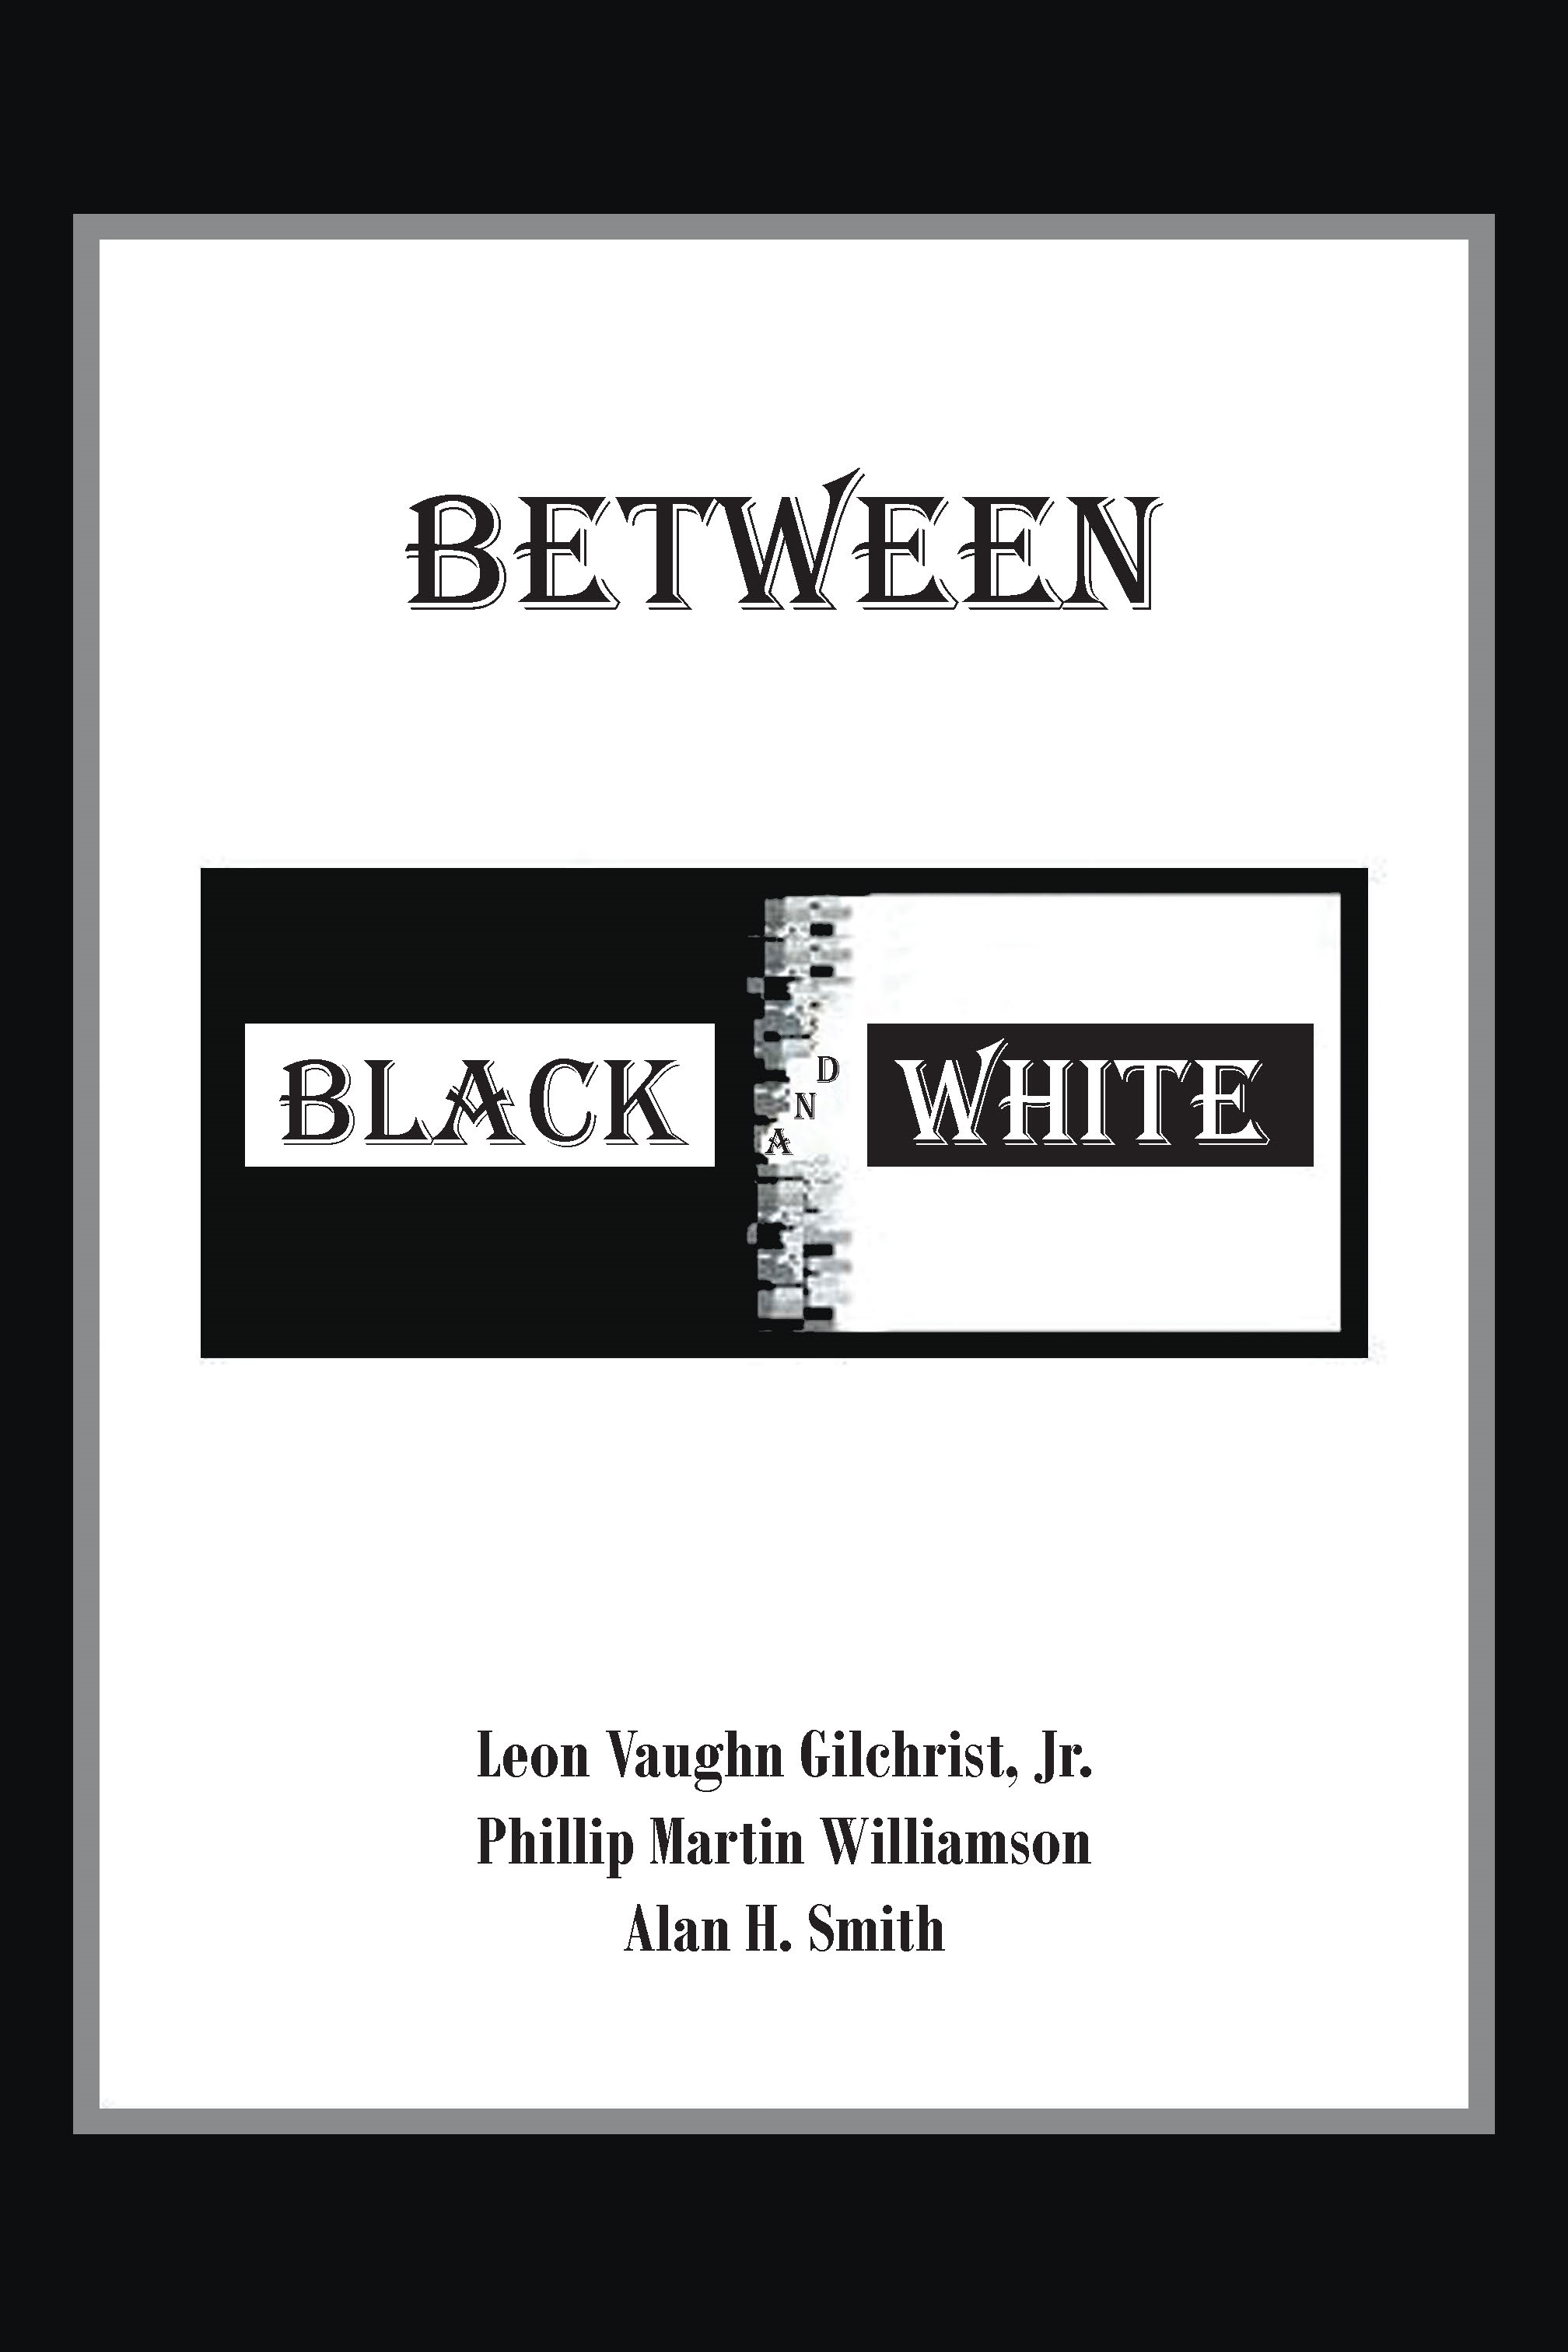 Between Black and White